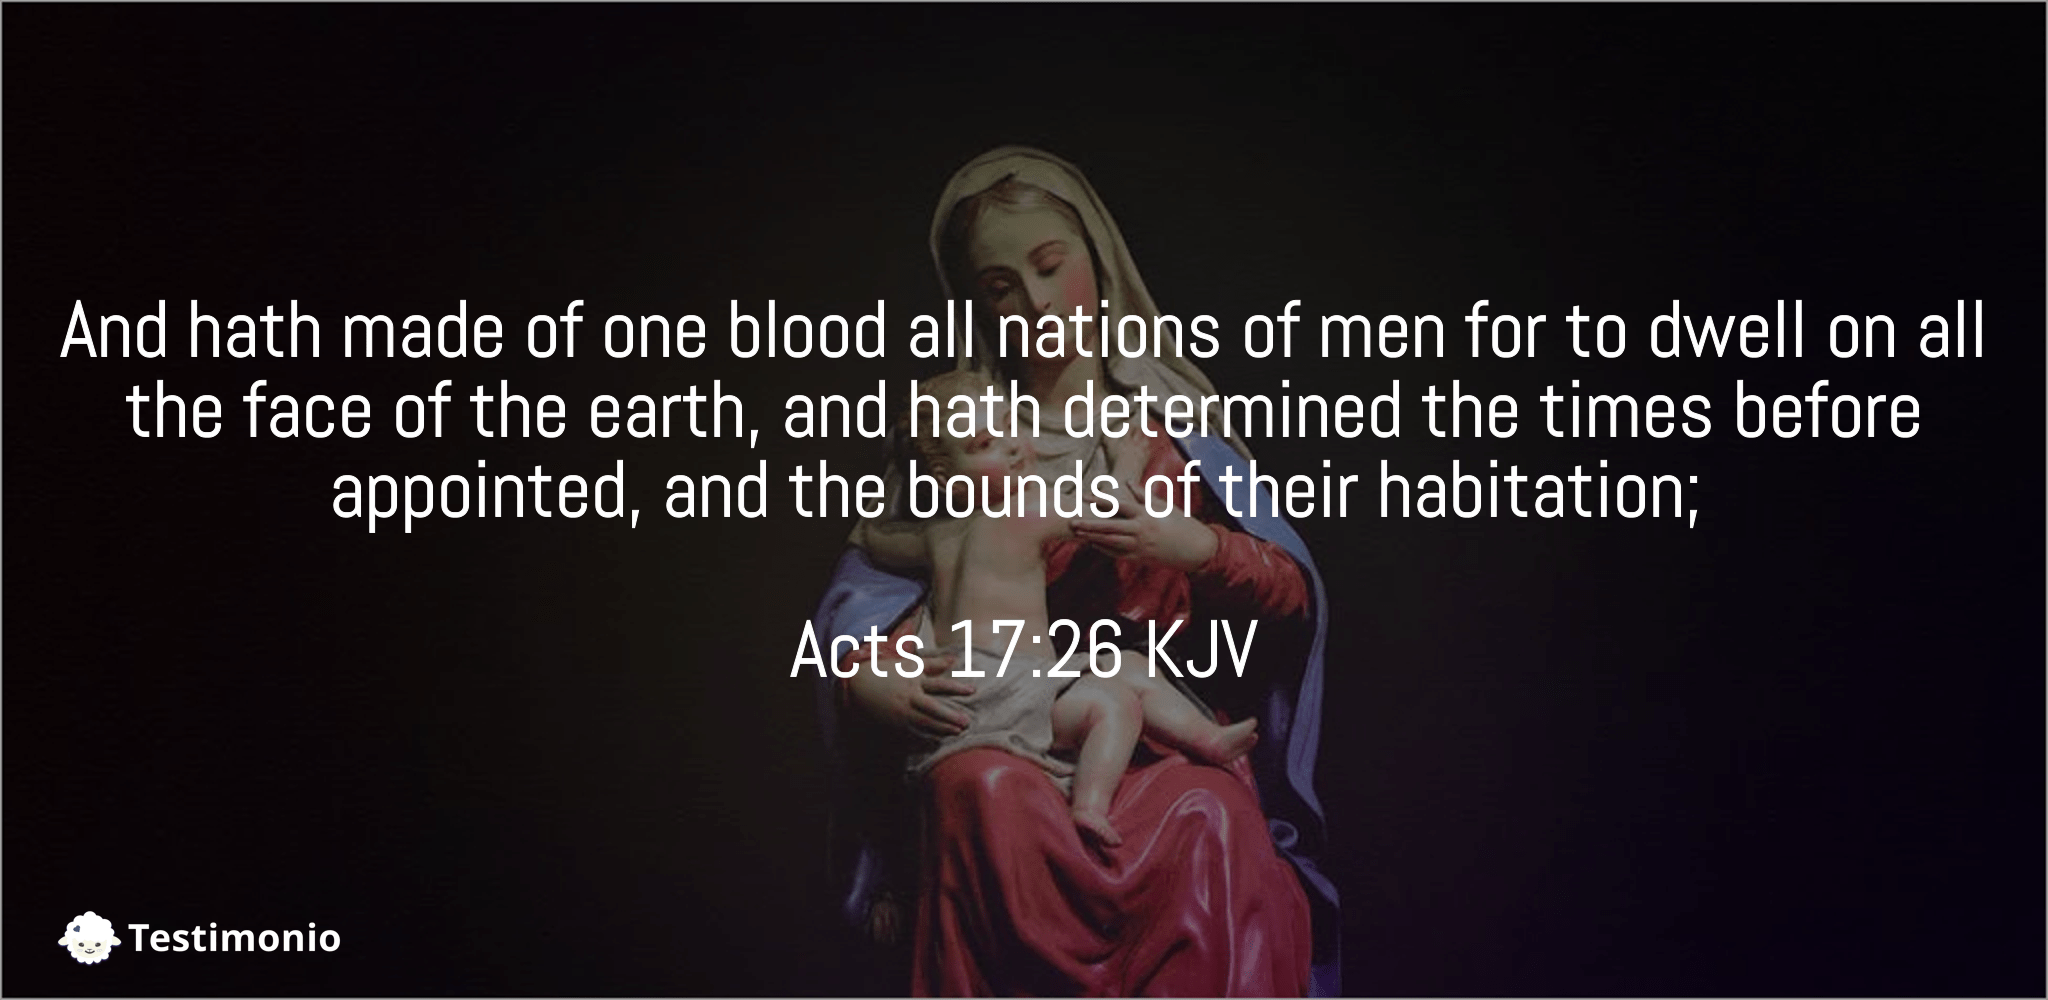 Acts 17:26